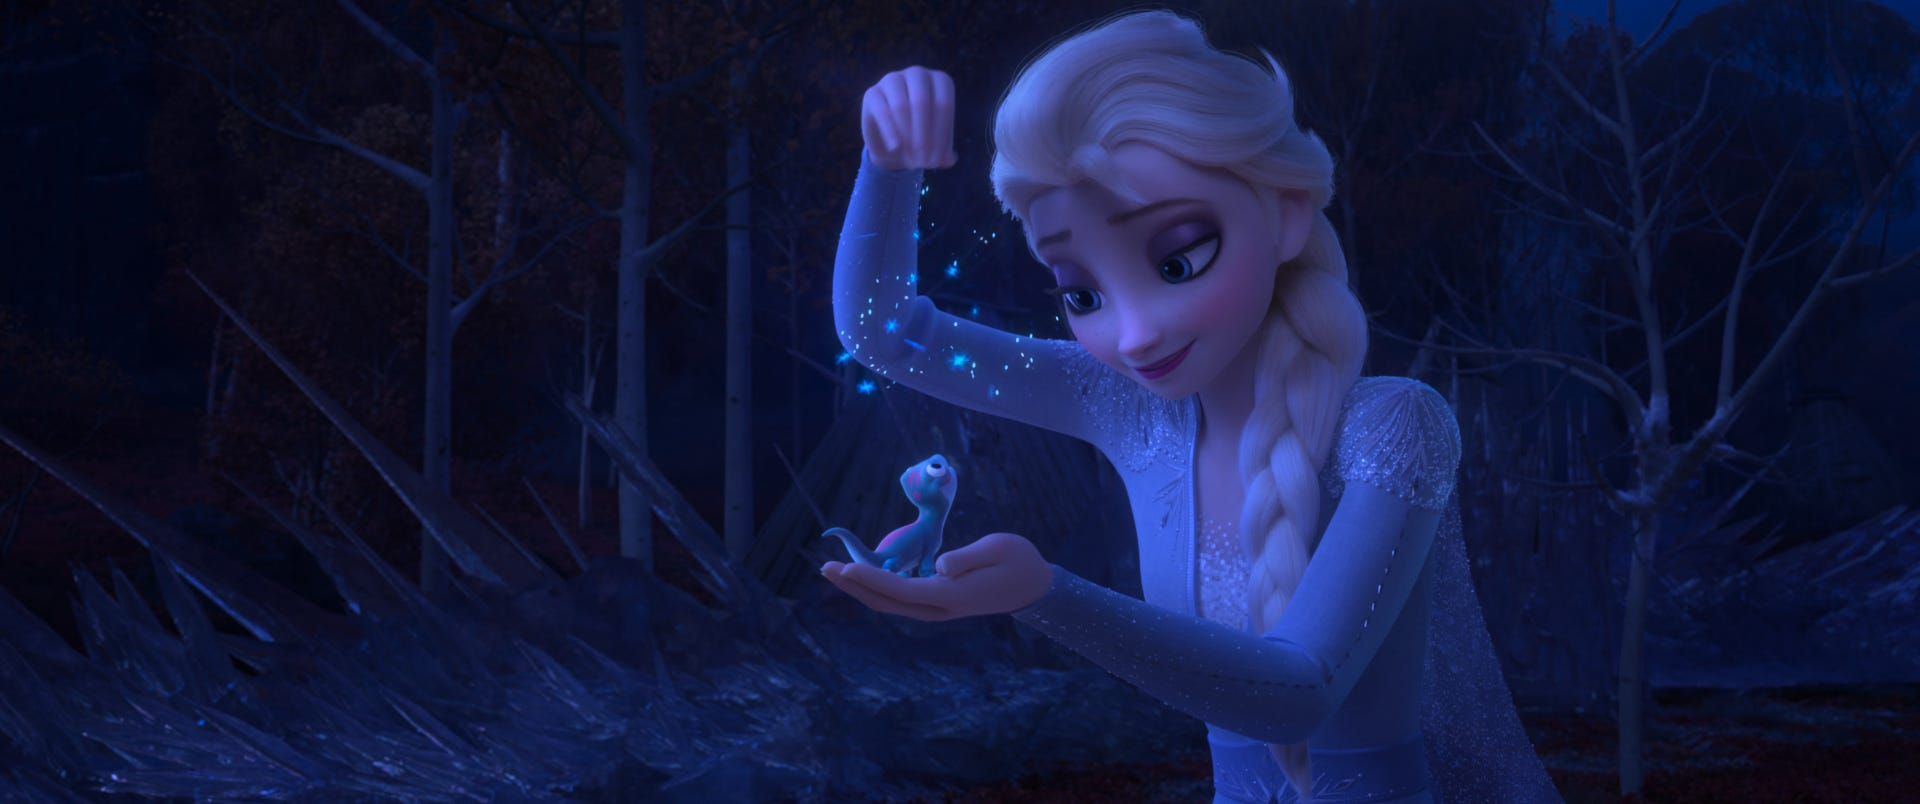 24+ Pictures Of Olaf From Frozen Two PNG